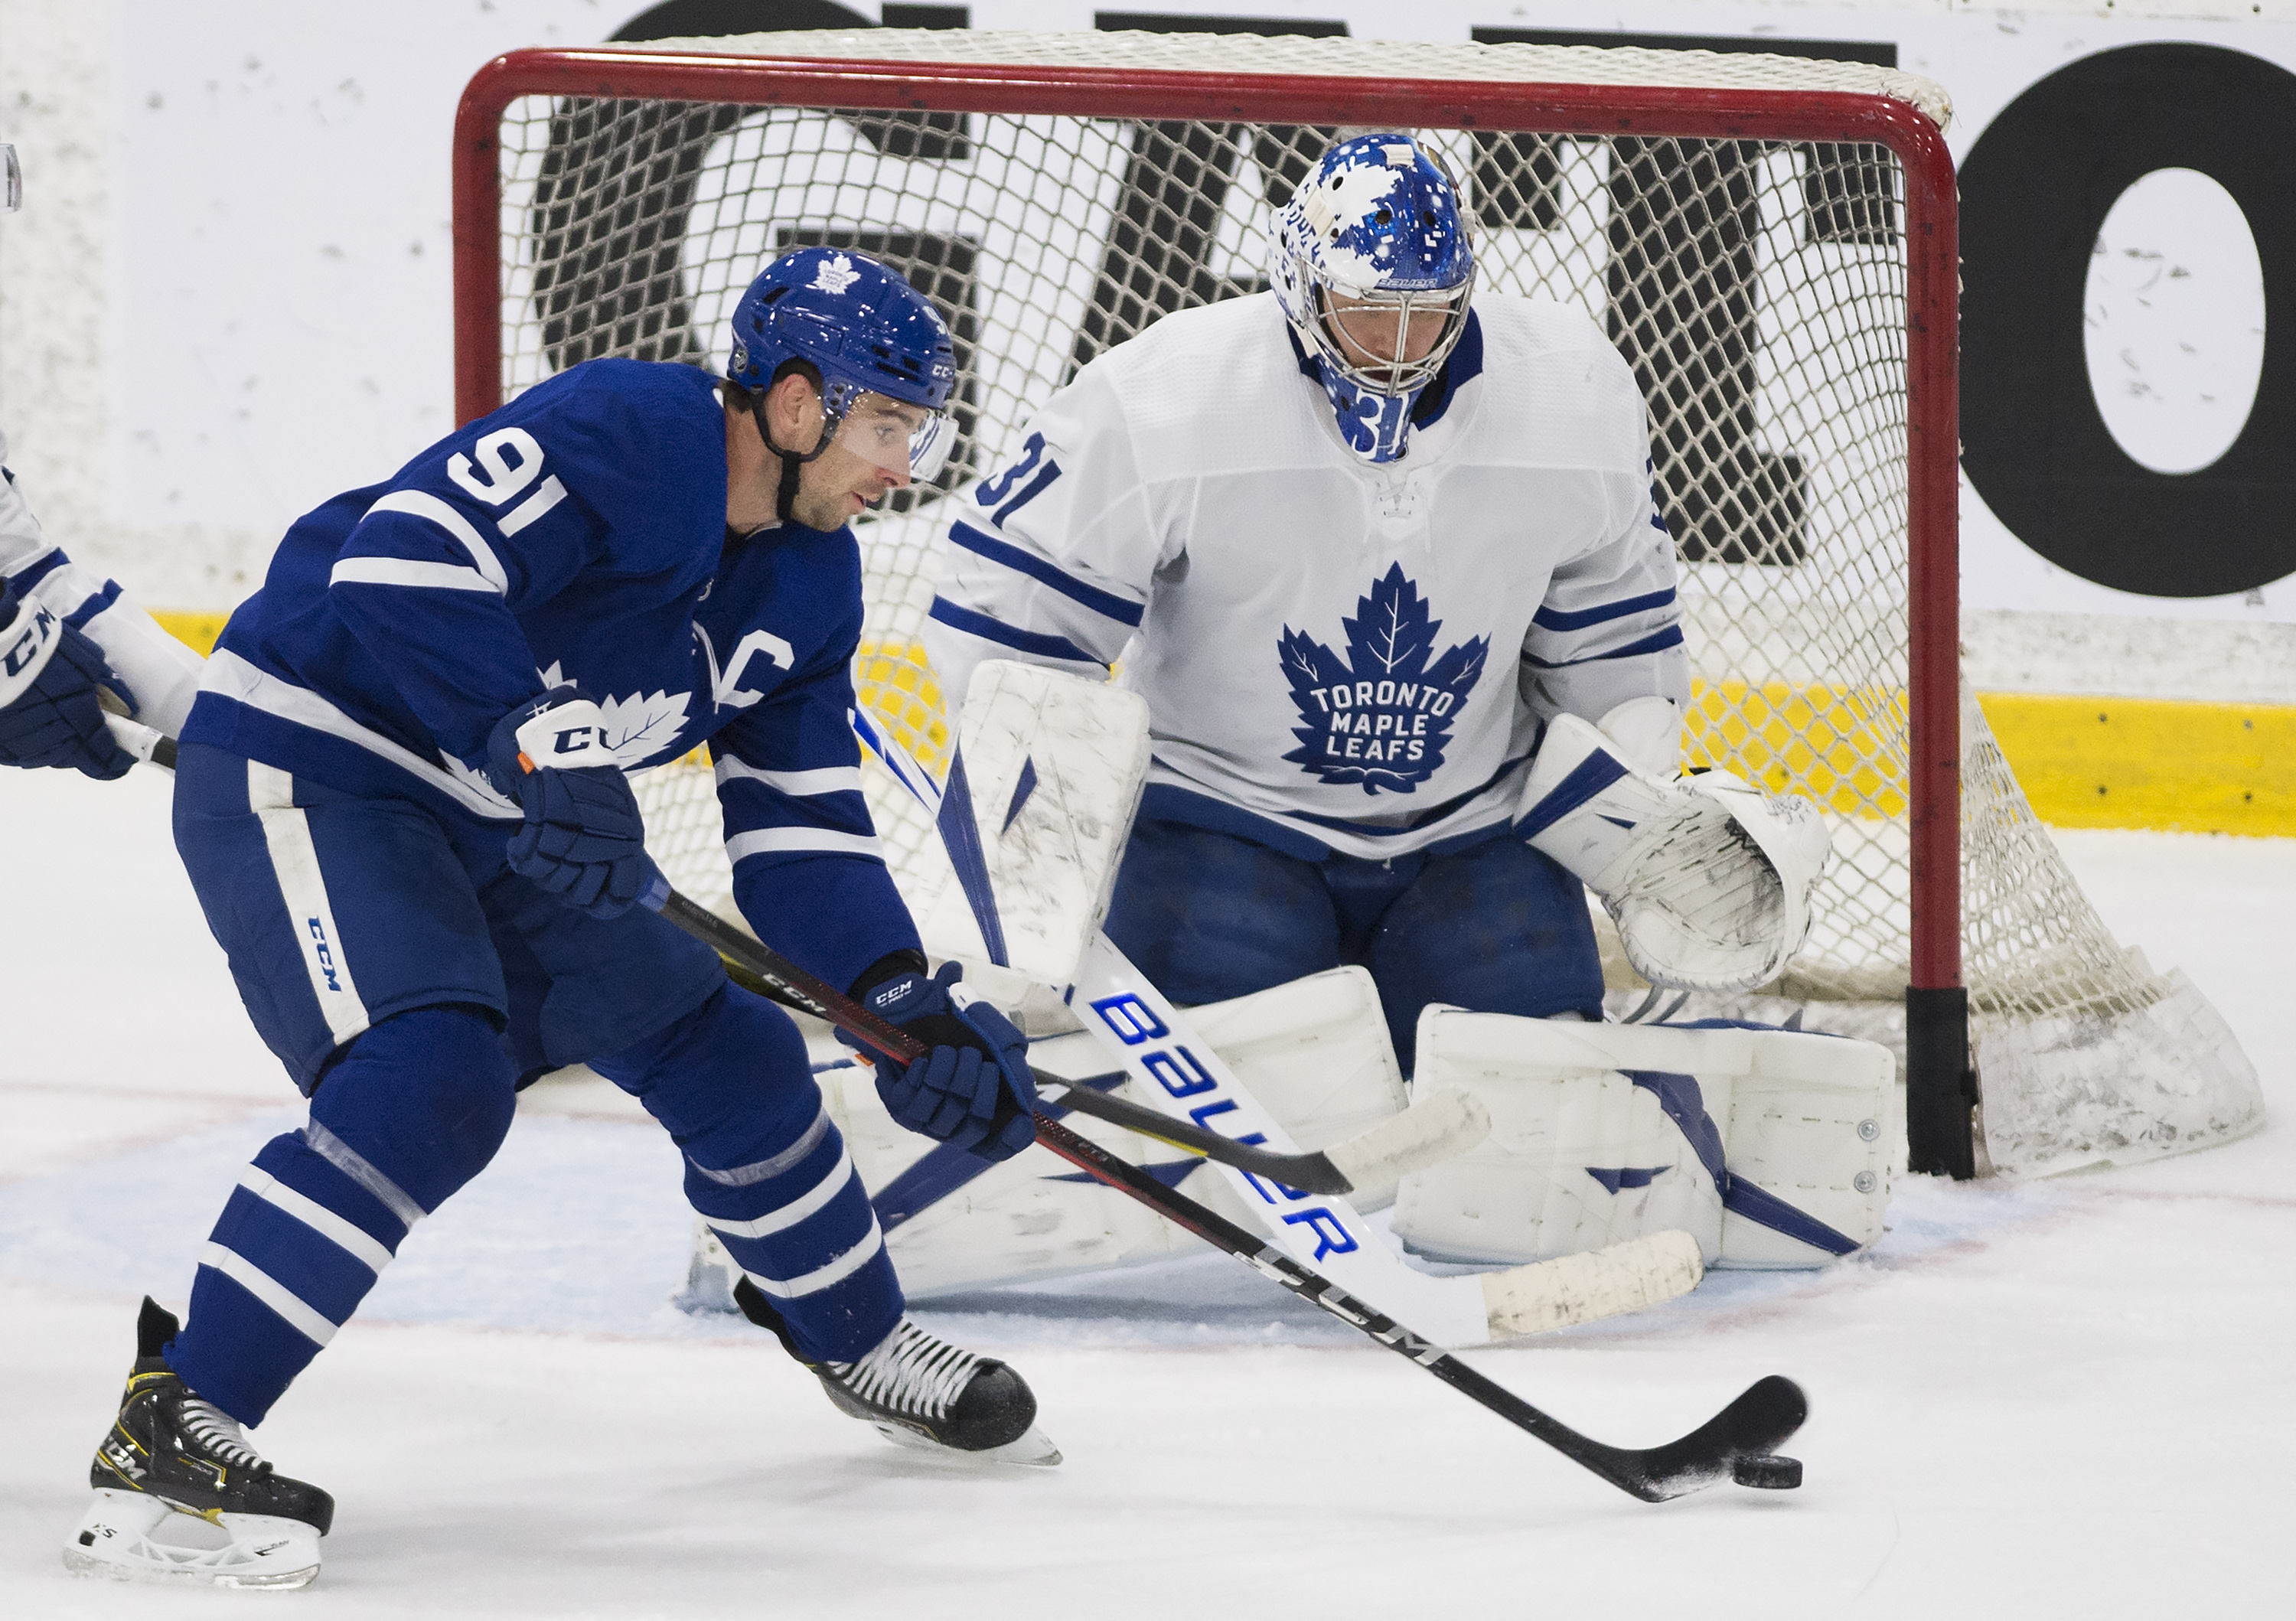 Rick Zamperin What To Look For As Toronto Maple Leafs Return To Action Globalnews Ca